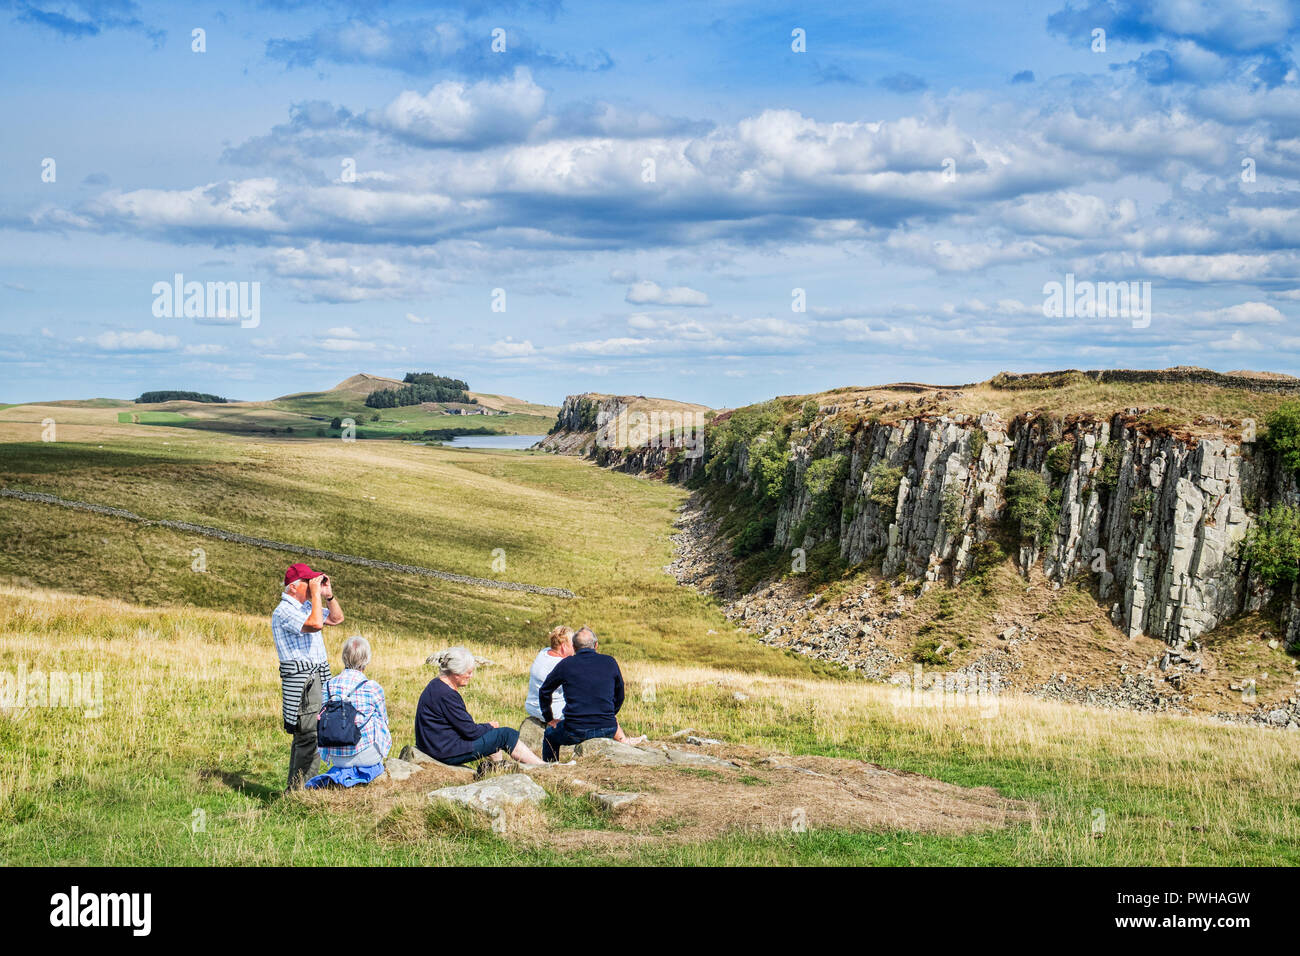 11 August 2018:  Hadrian's Wall, Northumberland, UK - Group of gray haired seniors sitting on the grass at Walltown Crags. - Stock Image